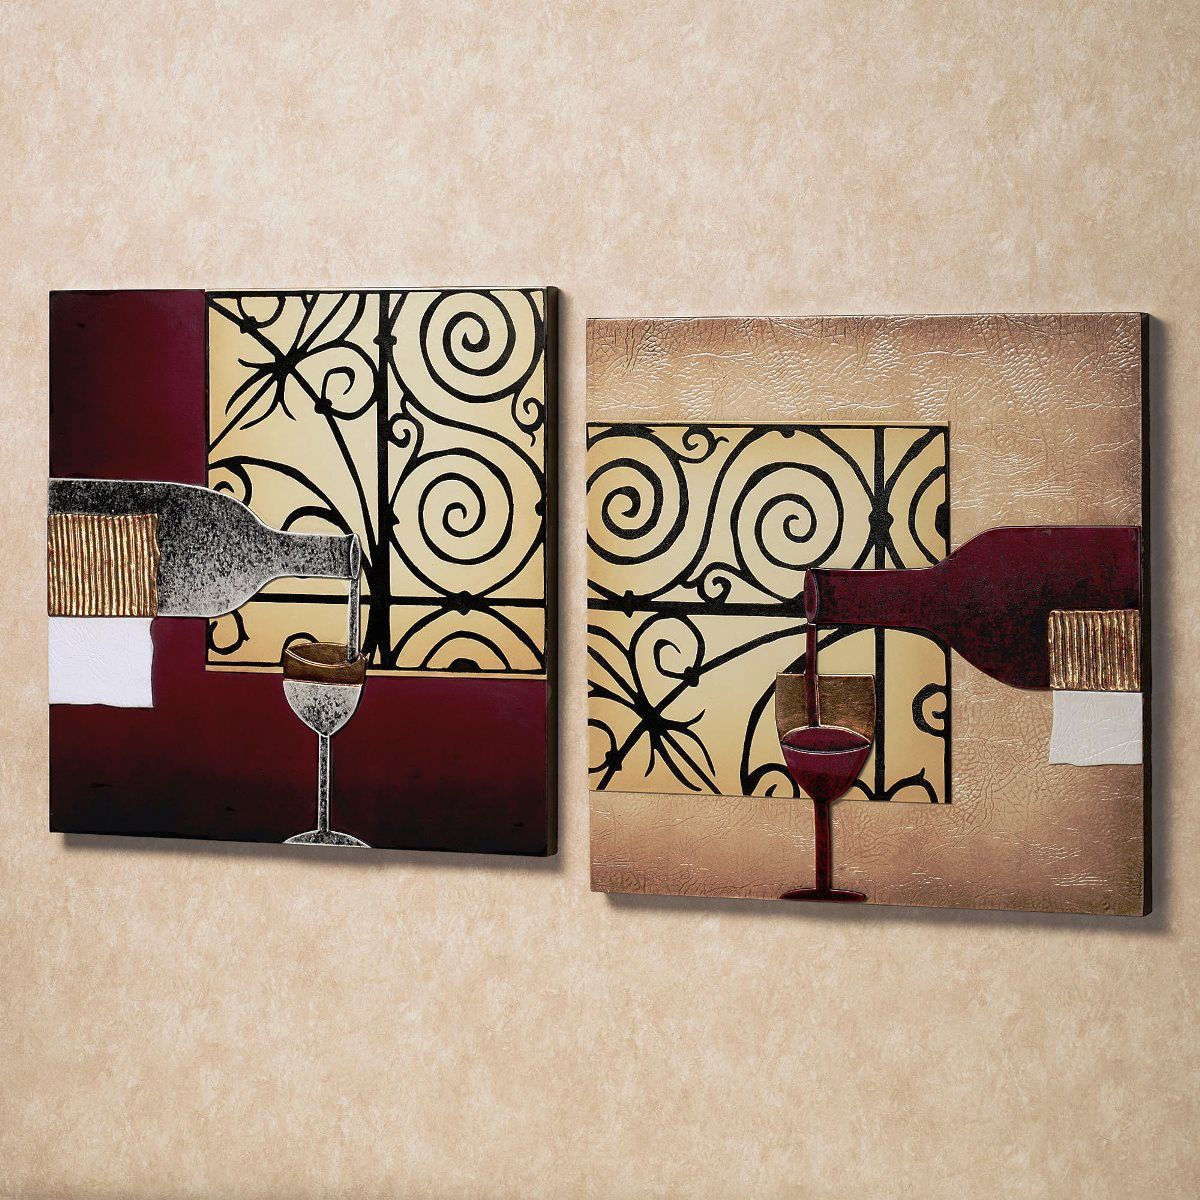 Best Wine Wall Art Ideas | Wall Art Decor | Diy Wall Decor In 3 Piece Magnolia Brown Panel Wall Decor Sets (View 13 of 30)